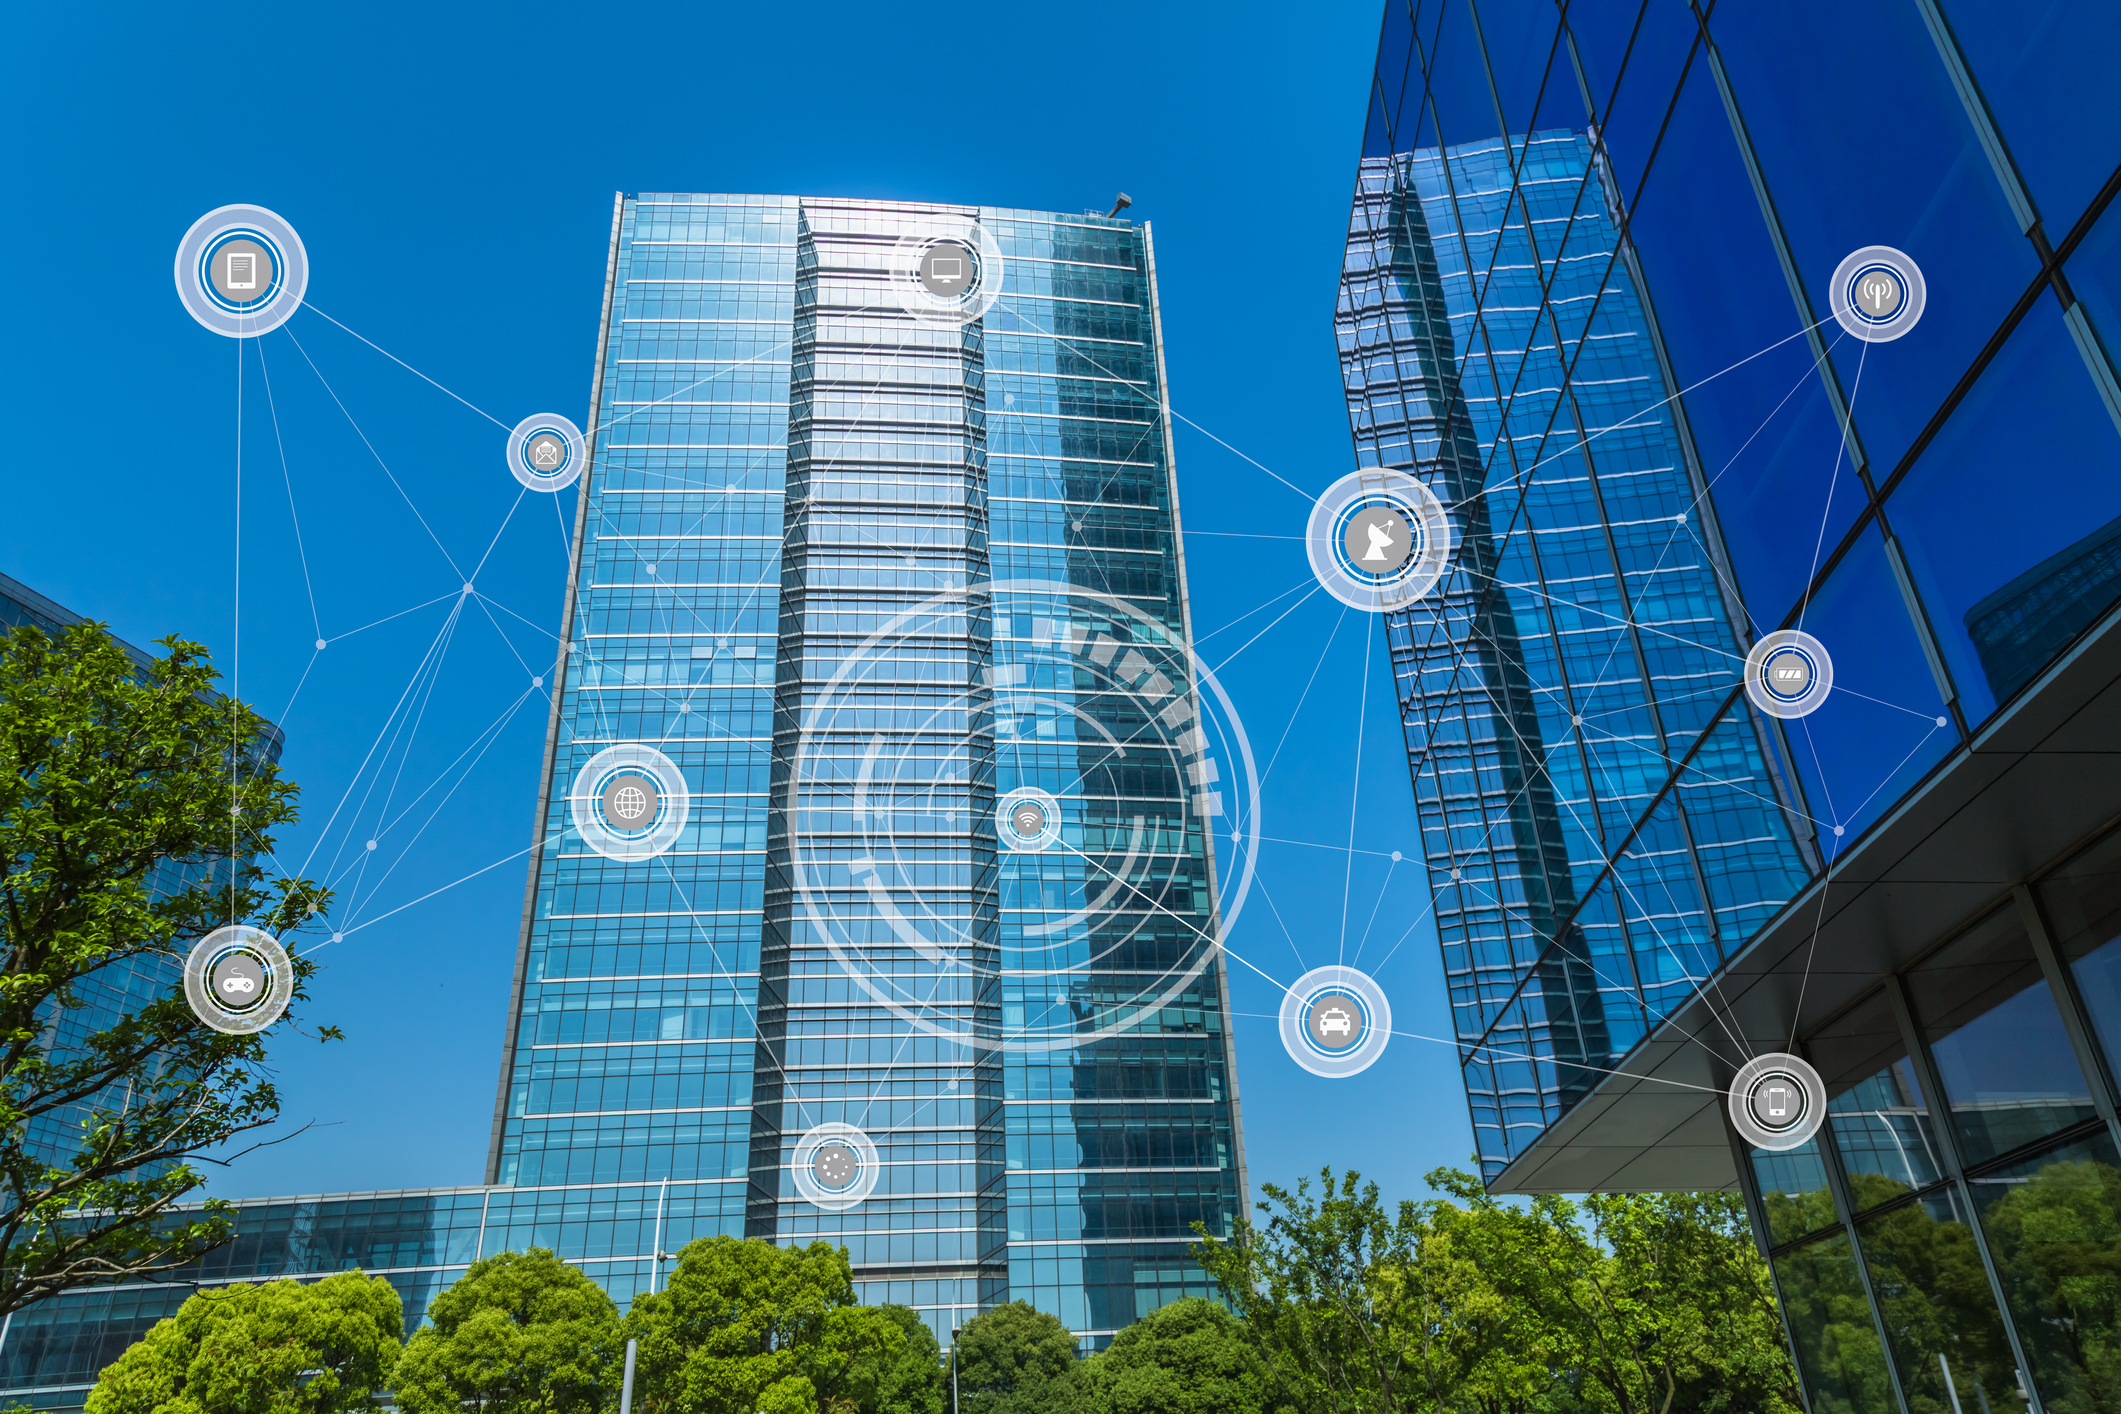 Sensors in Your Building: What, Where, and Why?